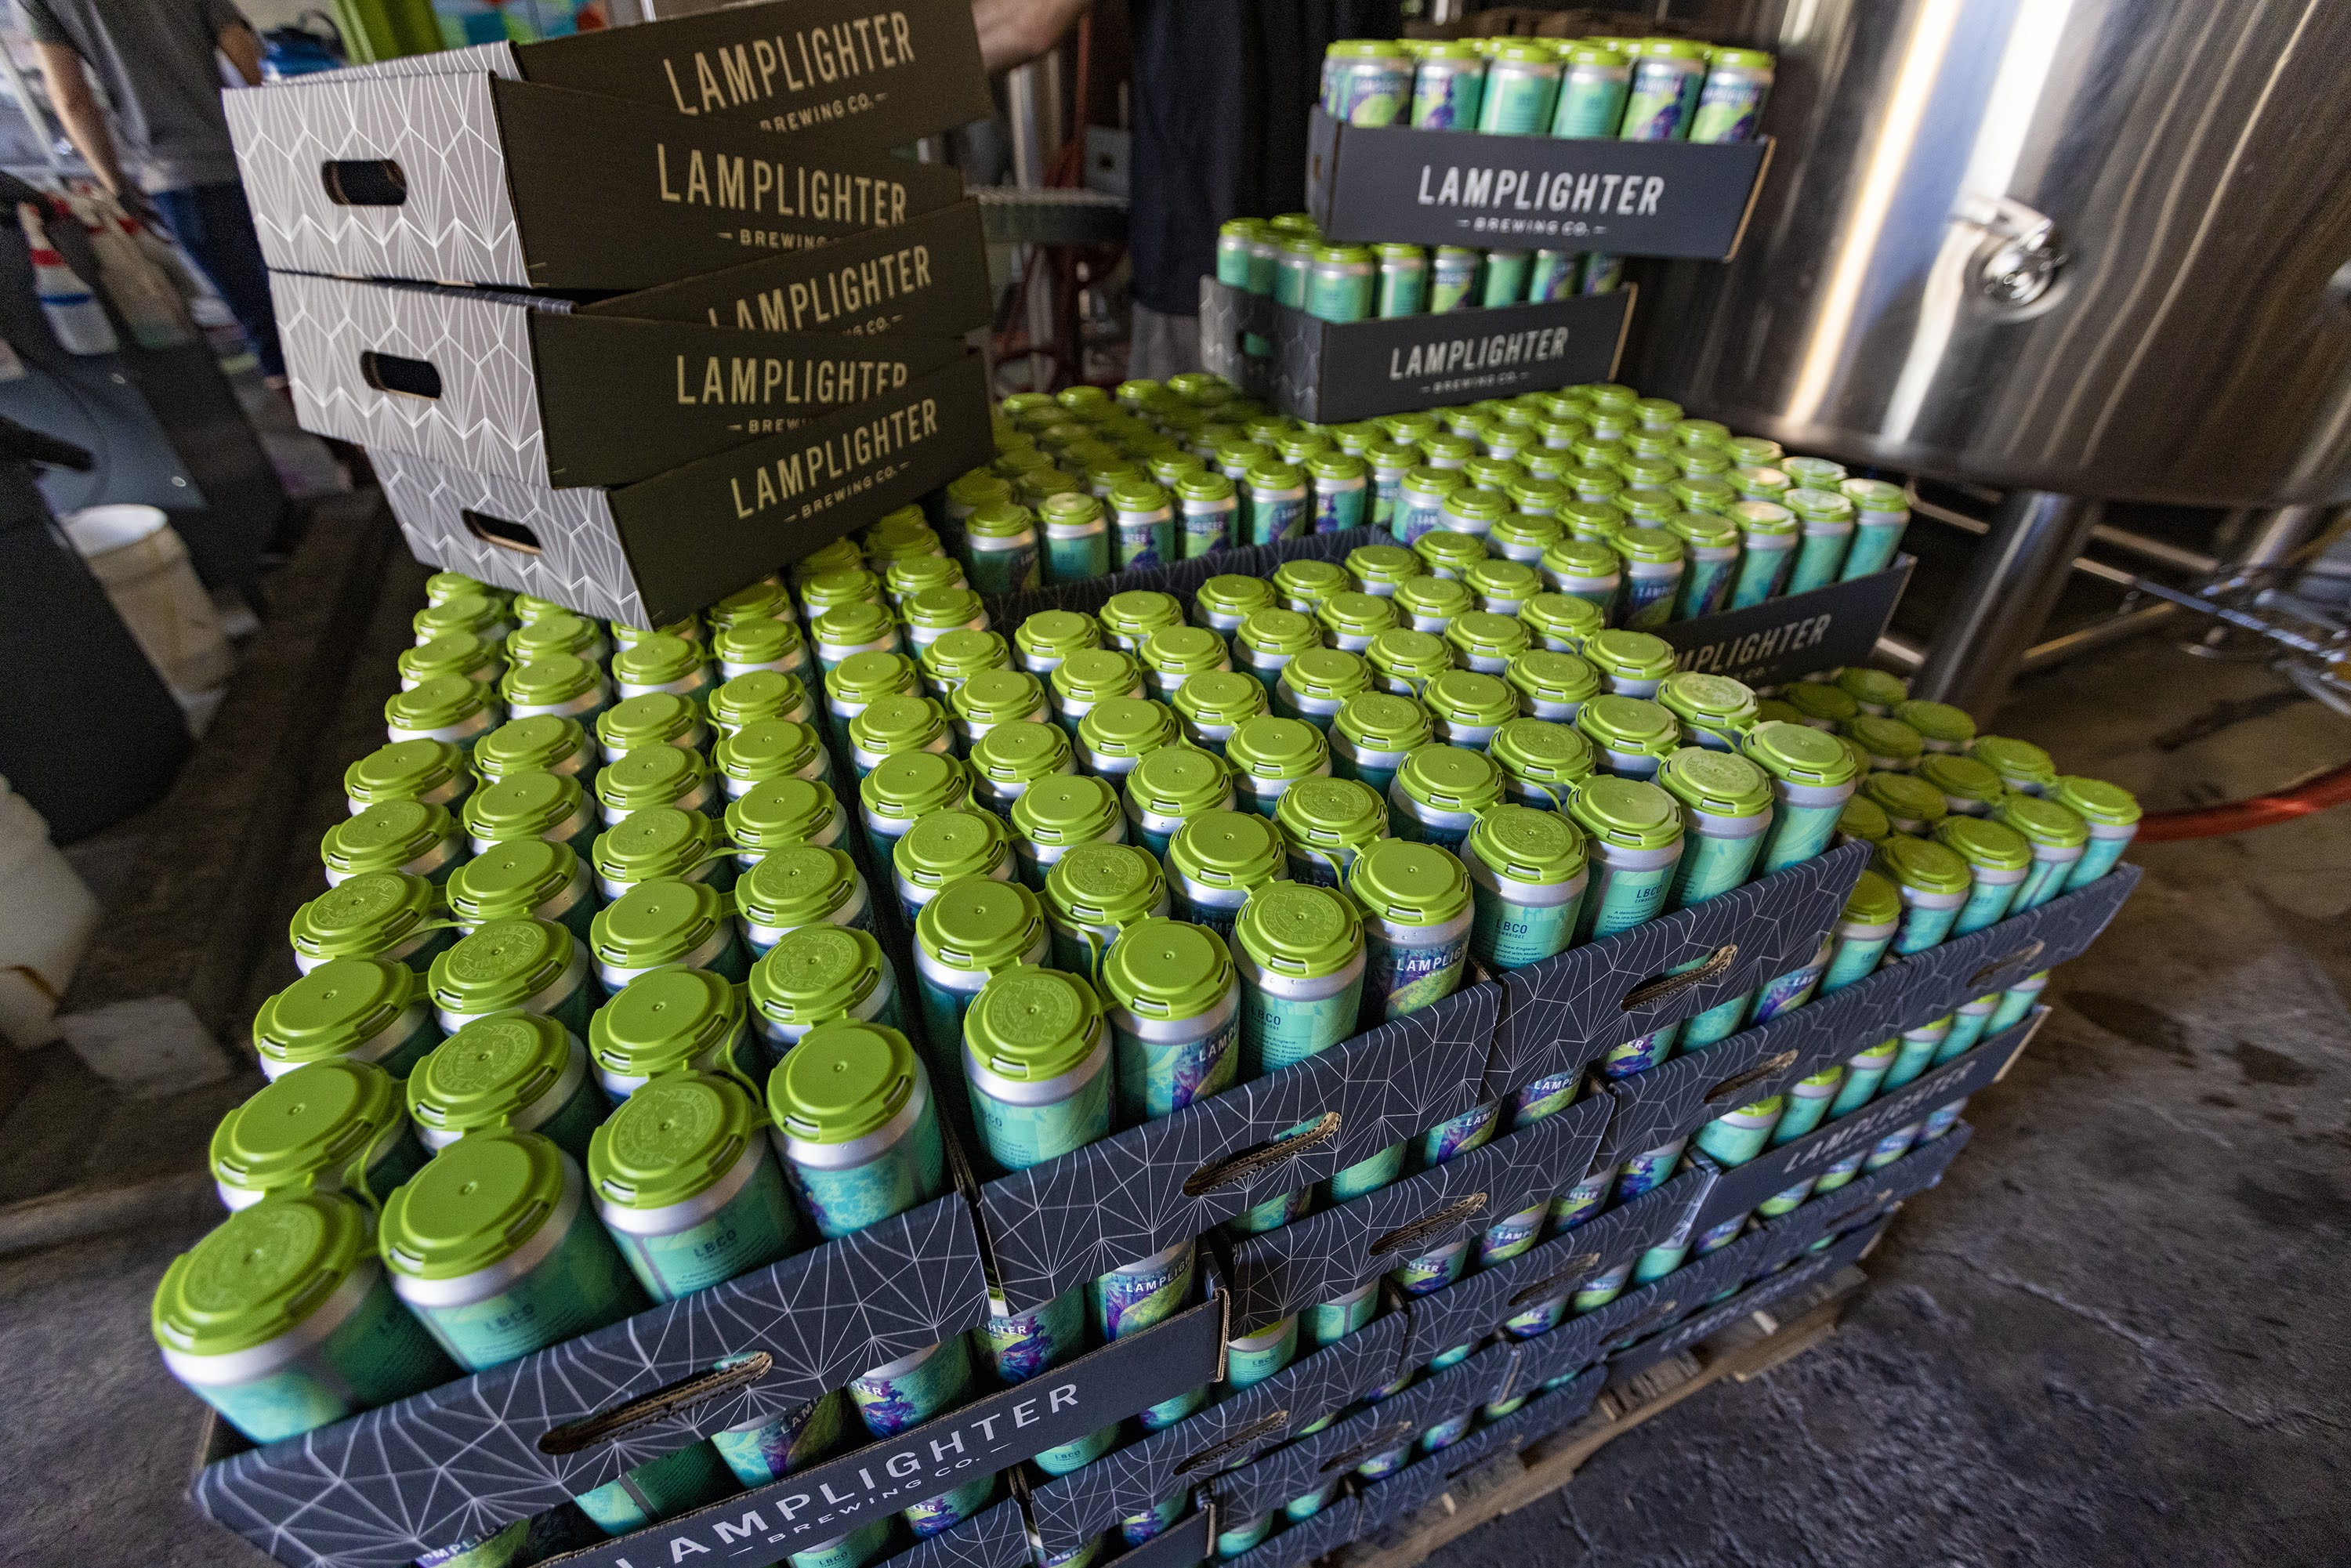 wbur.org - Bruce Gellerman - Craft beer has a plastic problem. Some local breweries are finding solutions